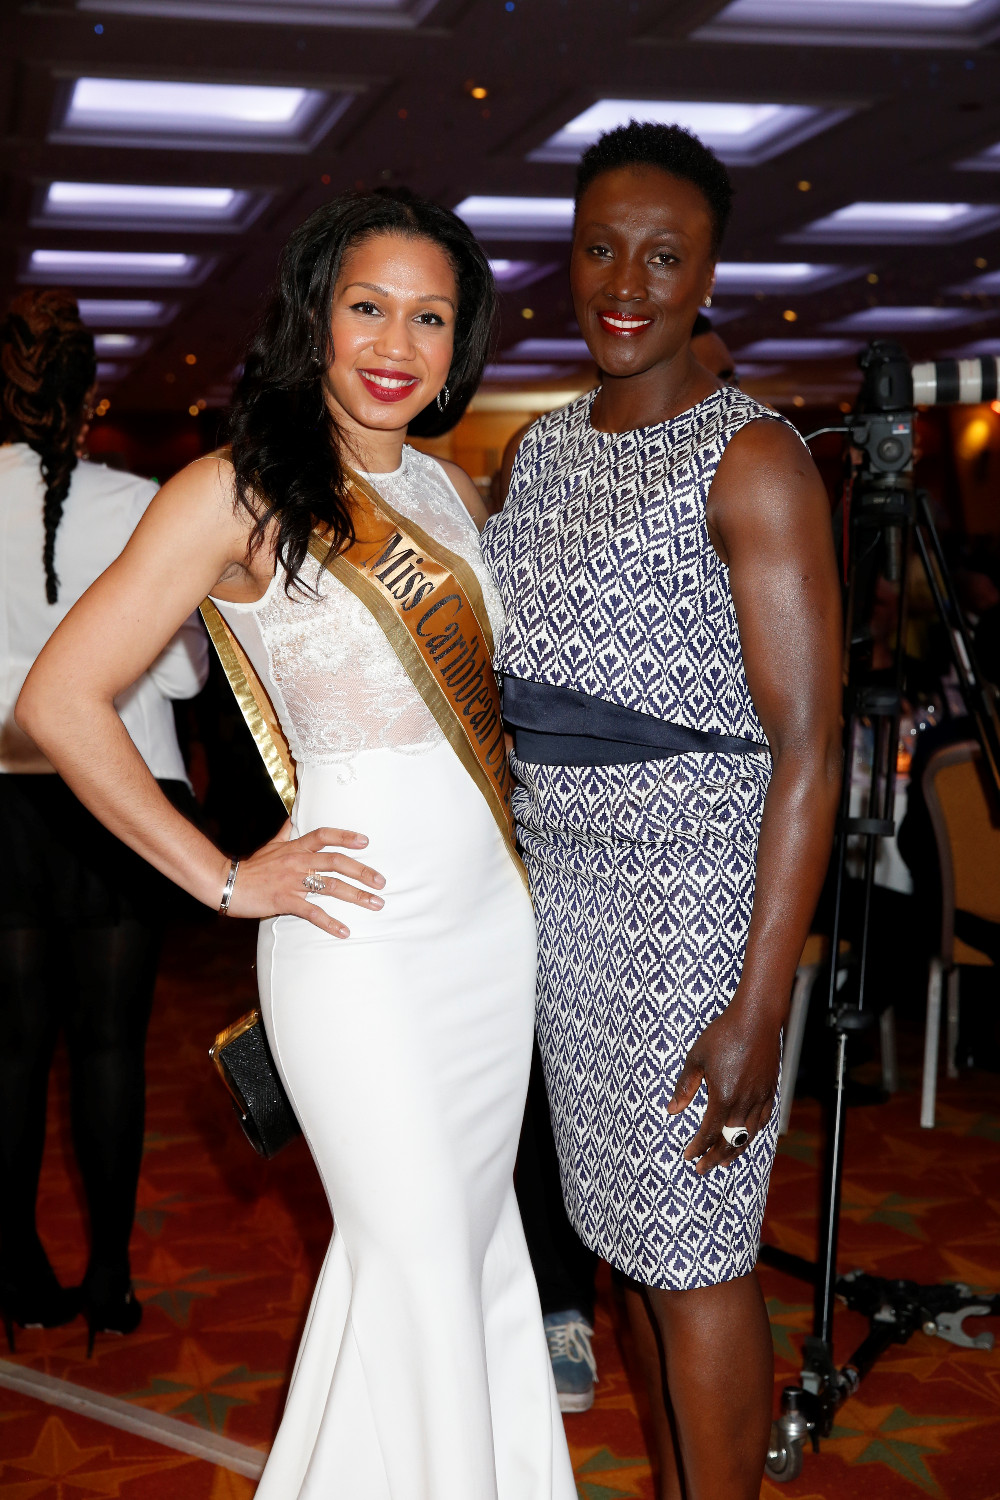 Amy Harris-Willock with Jackie Agyepong (ex Olympic athlete)